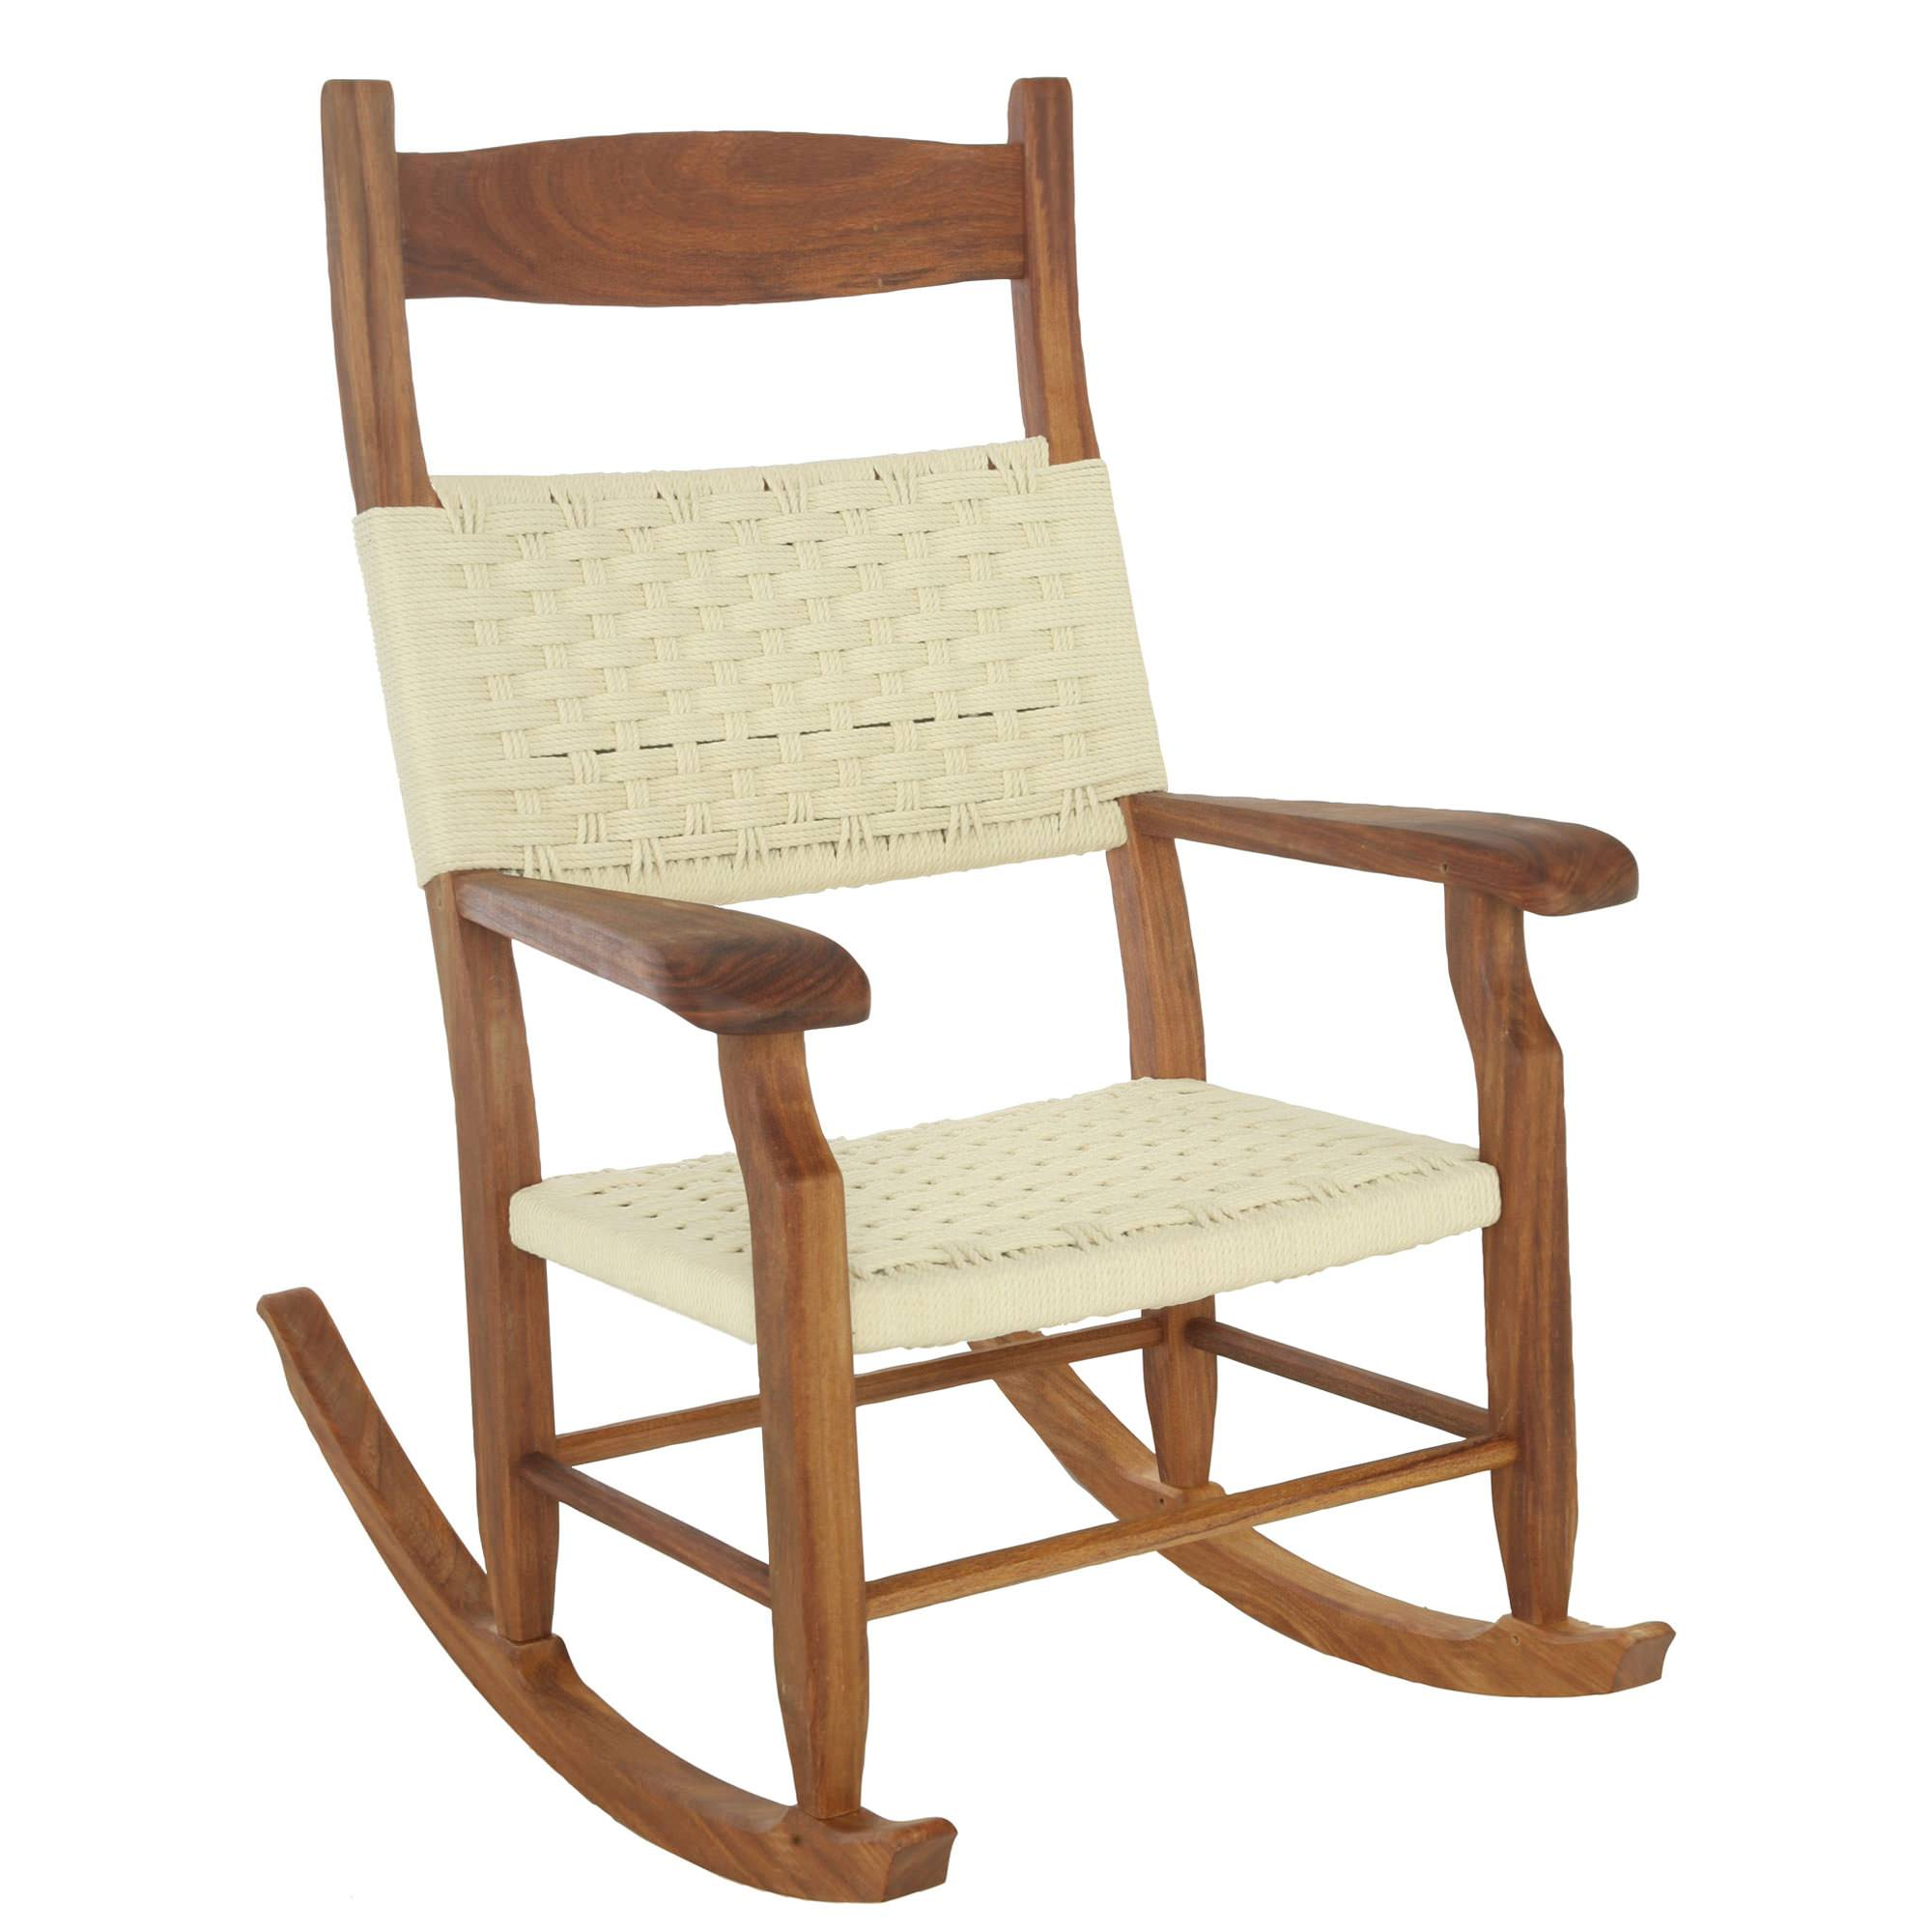 Hatteras Outdoors Rocking Chair Oatmeal DuraCord Rope